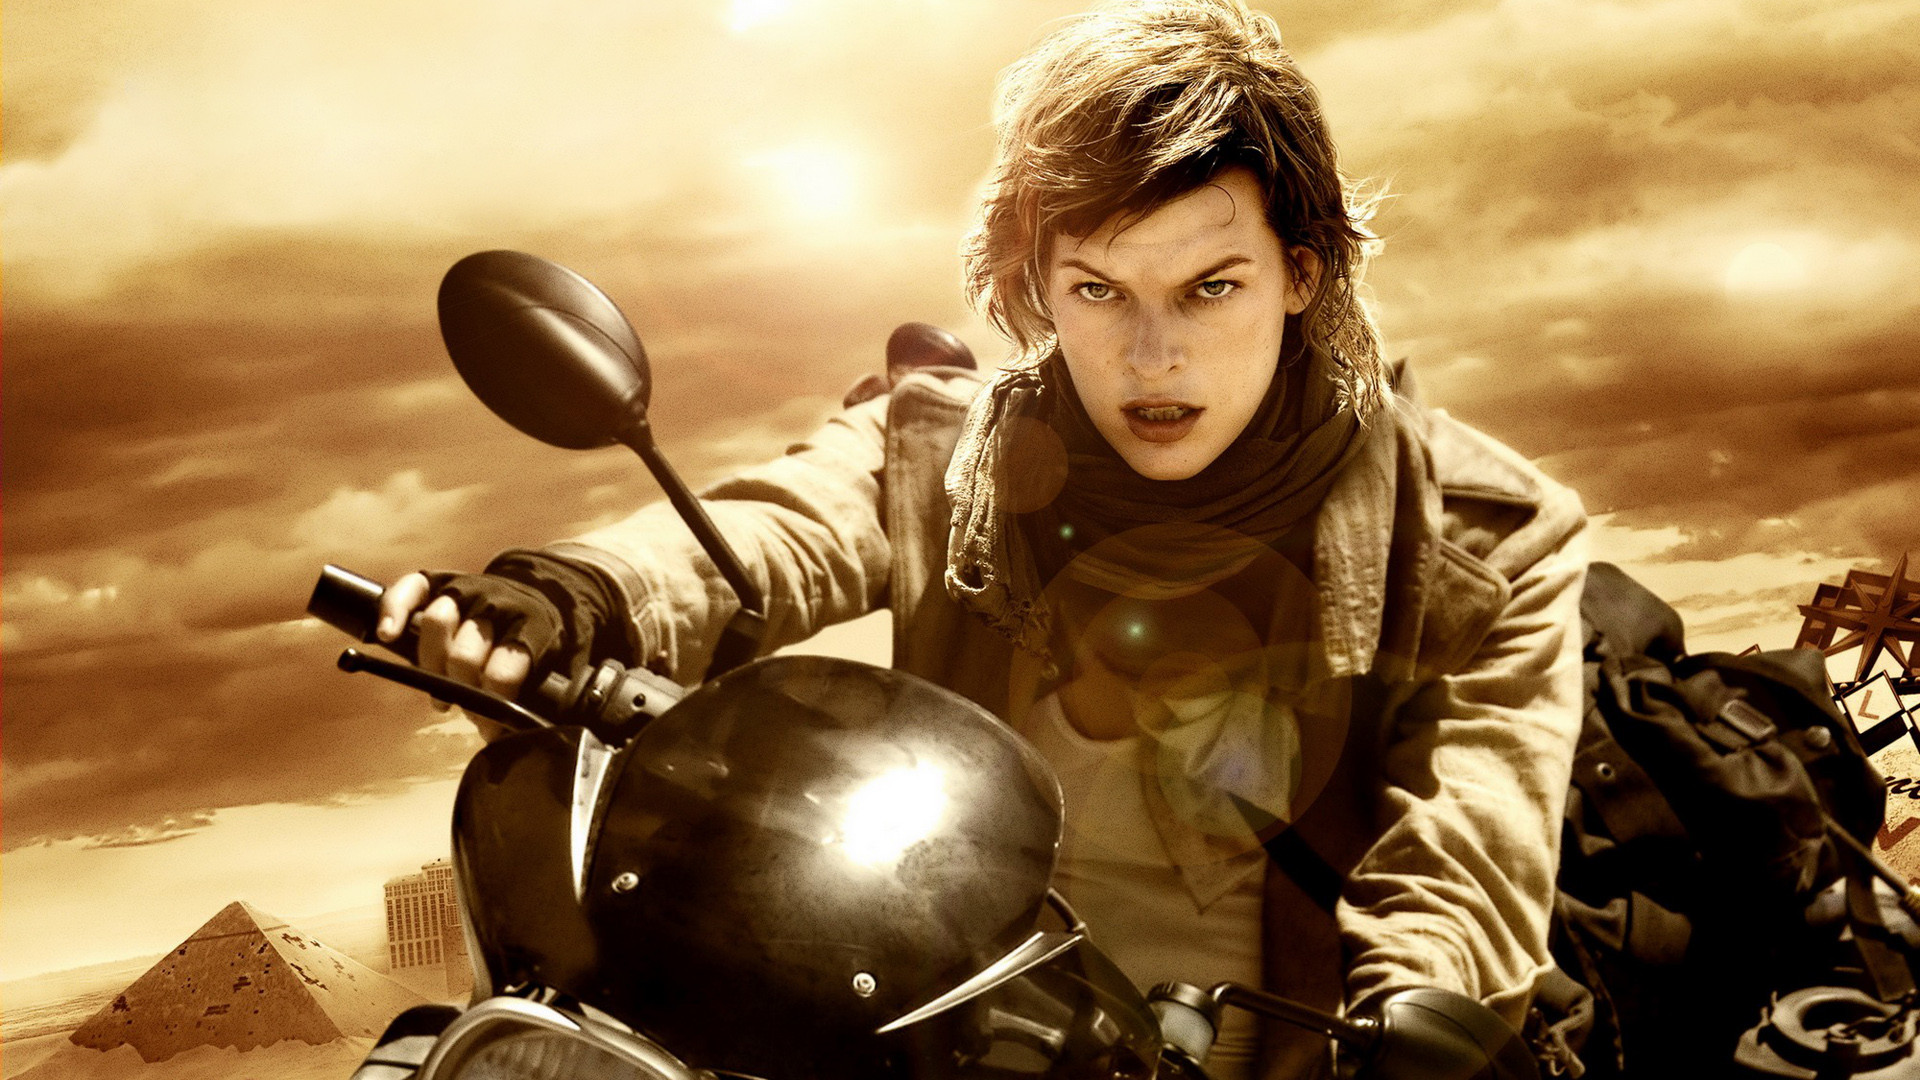 resident-evil-movie-wallpapers-high-quality-resolution.png